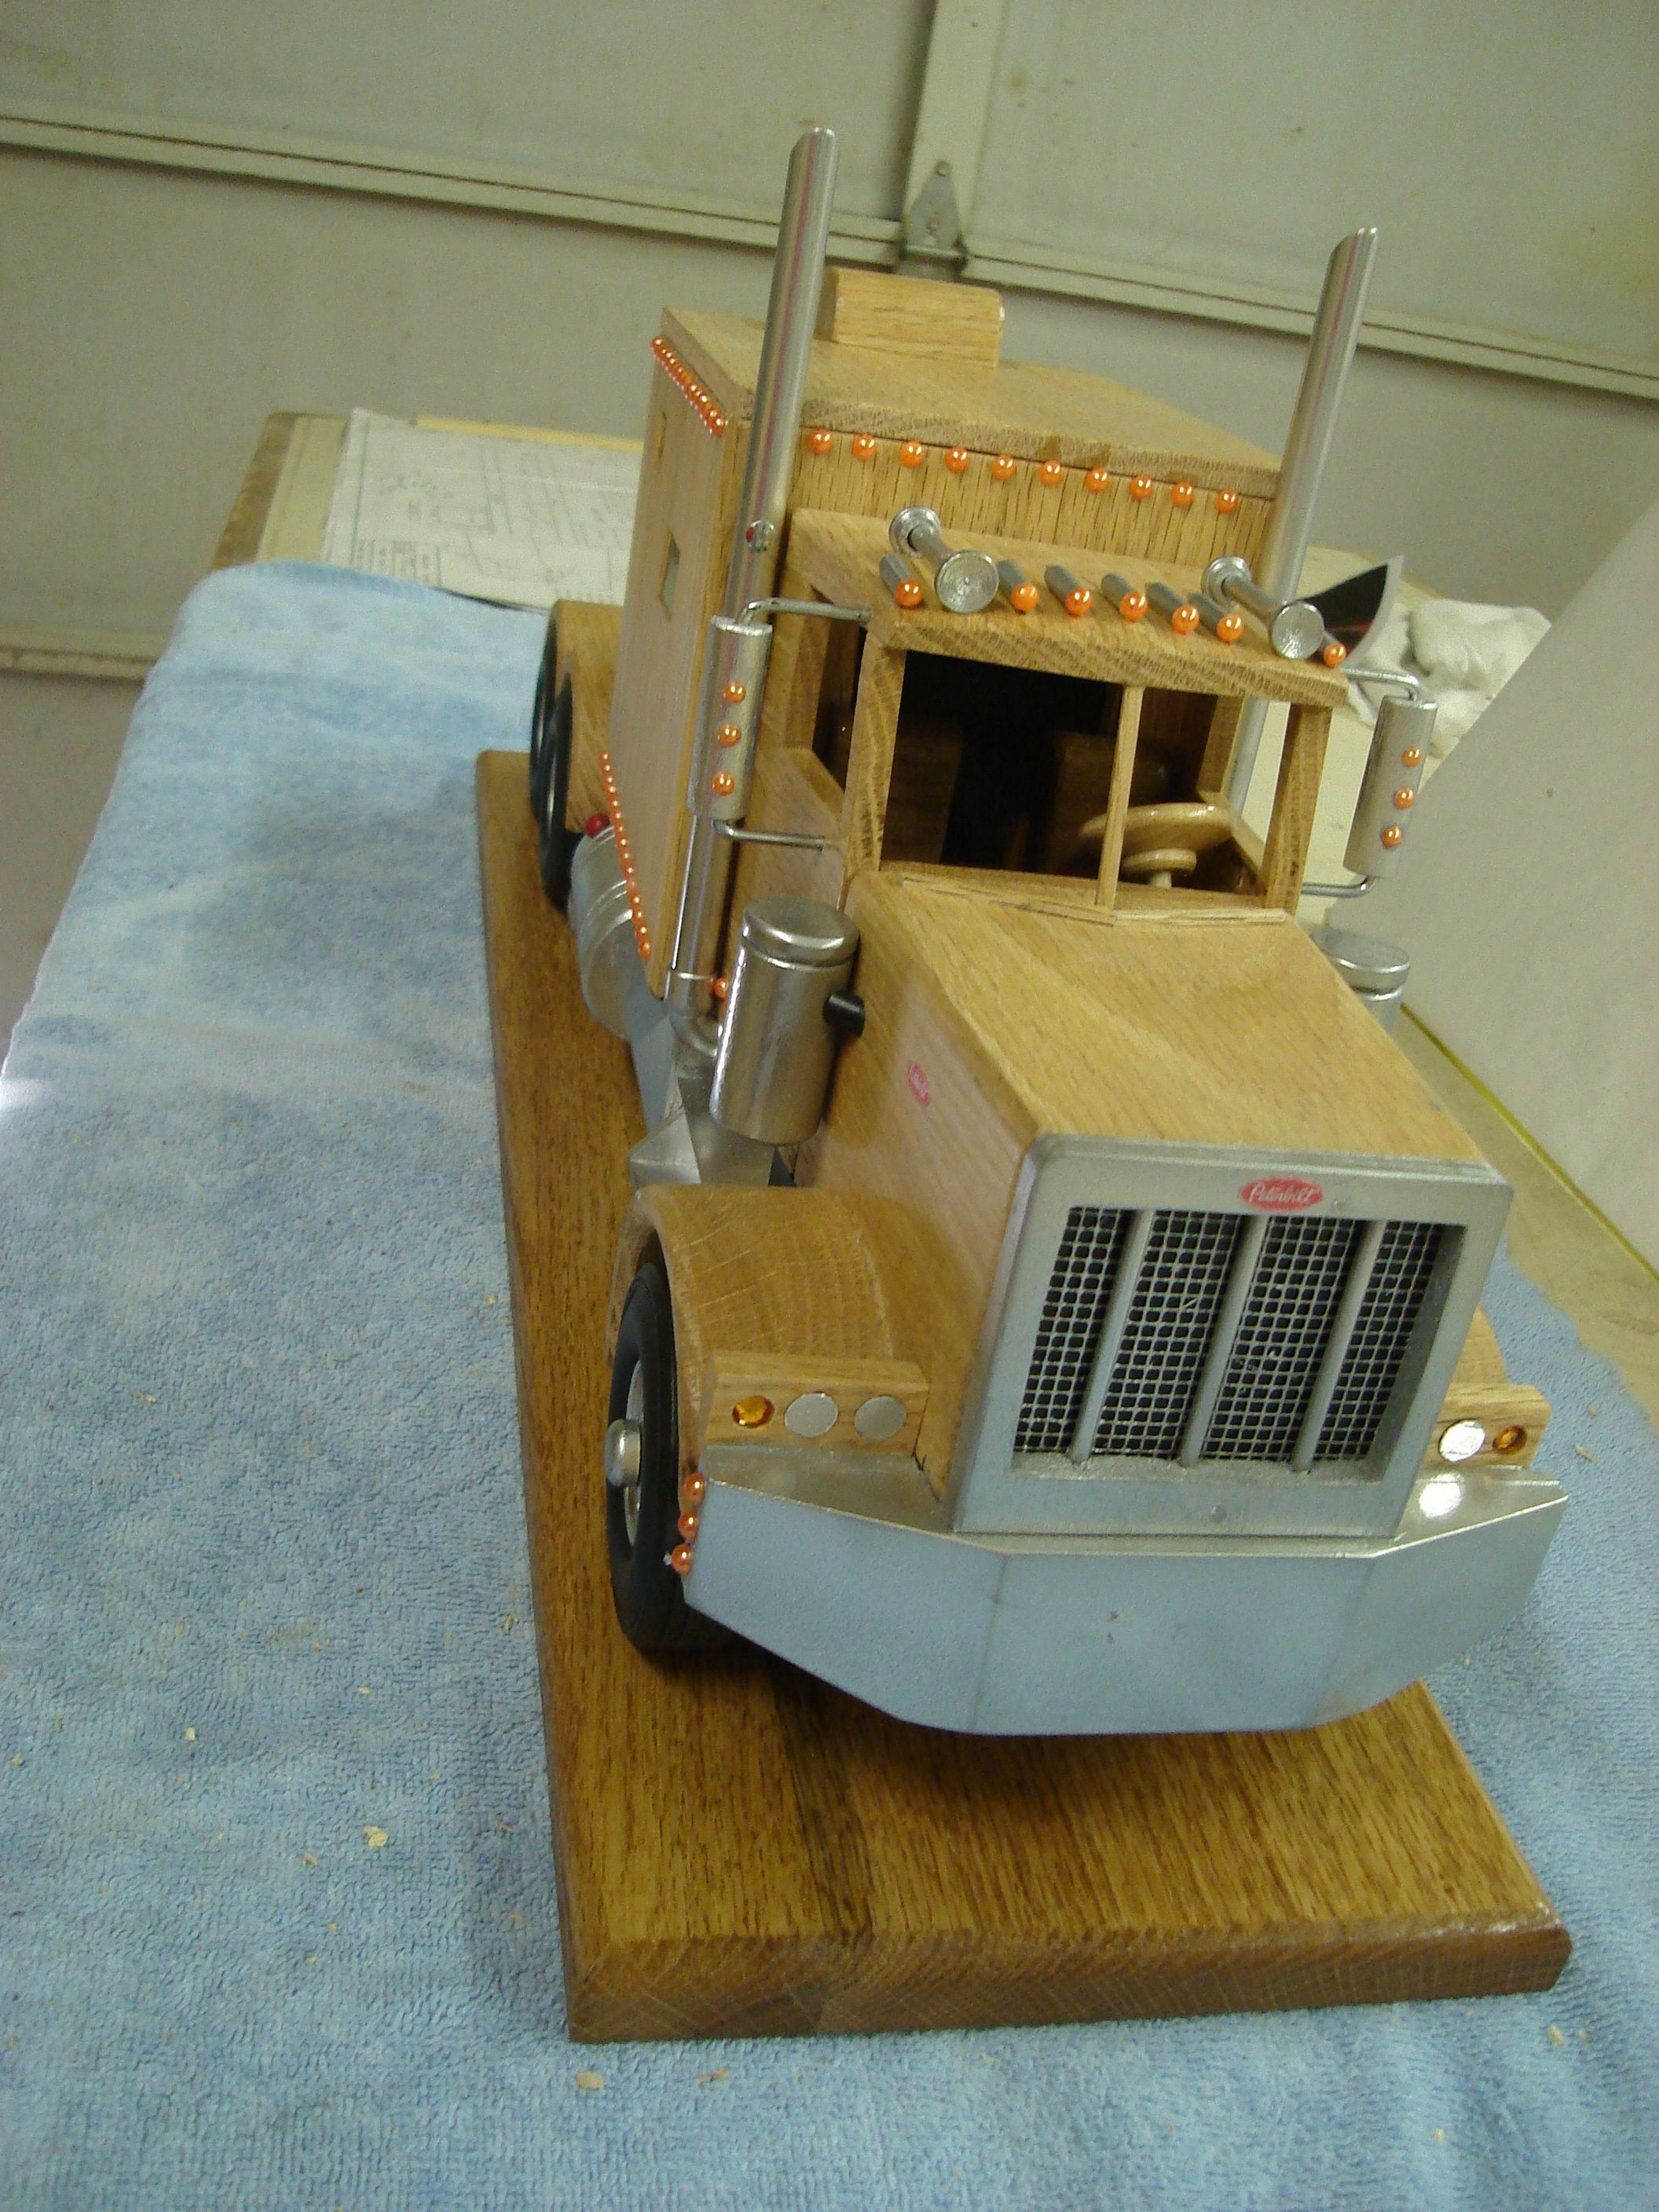 Frontal view of Oak truck